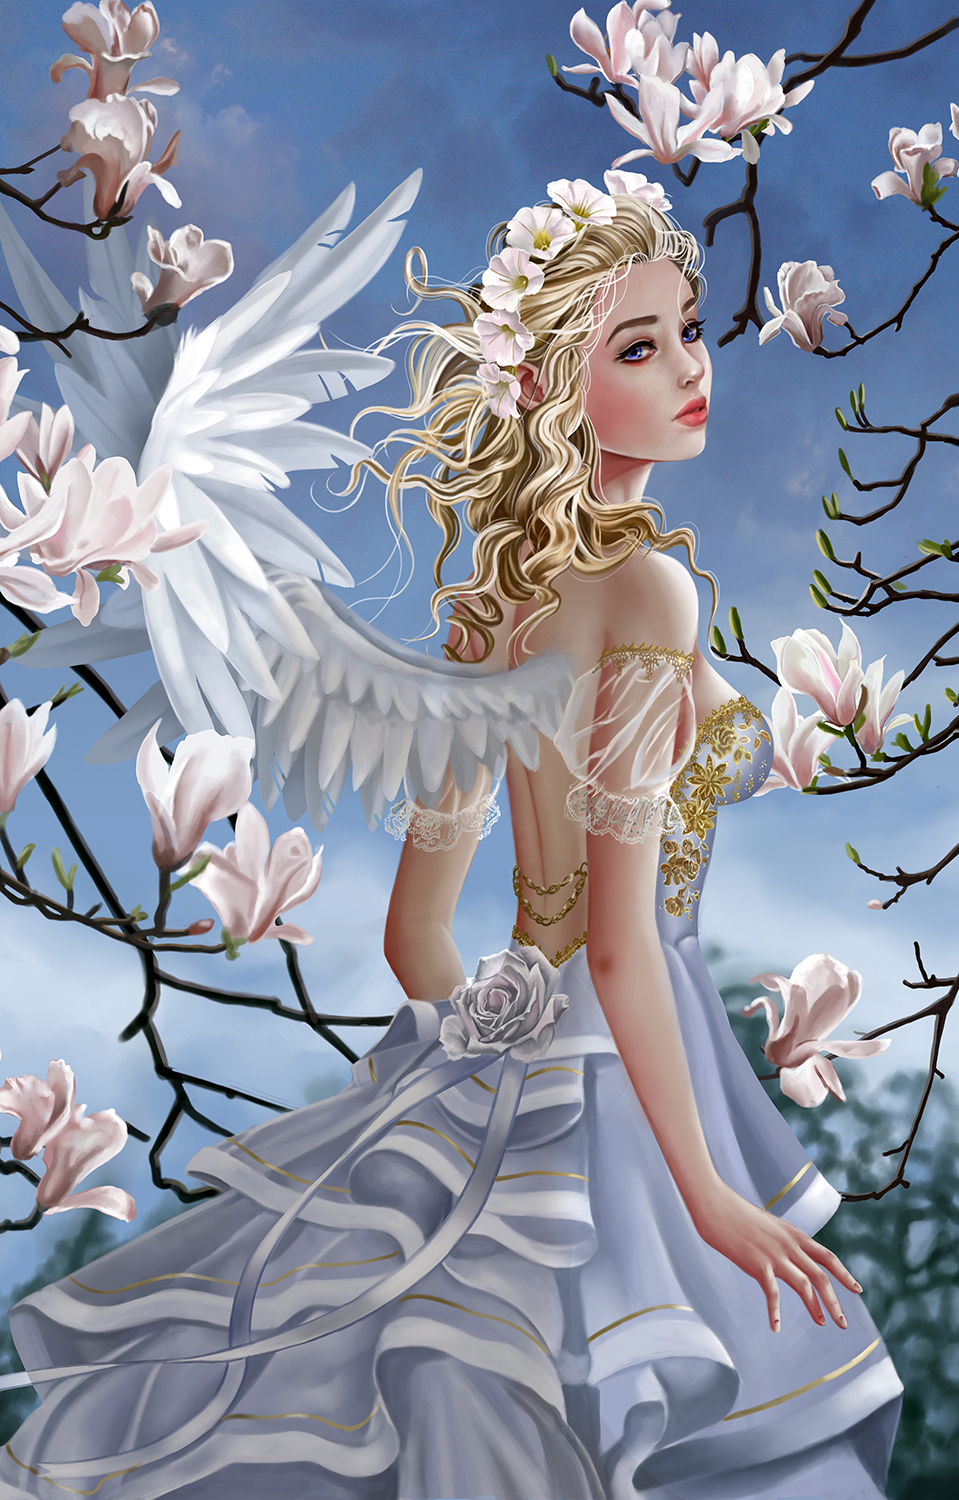 Angel and Magnolias 1000